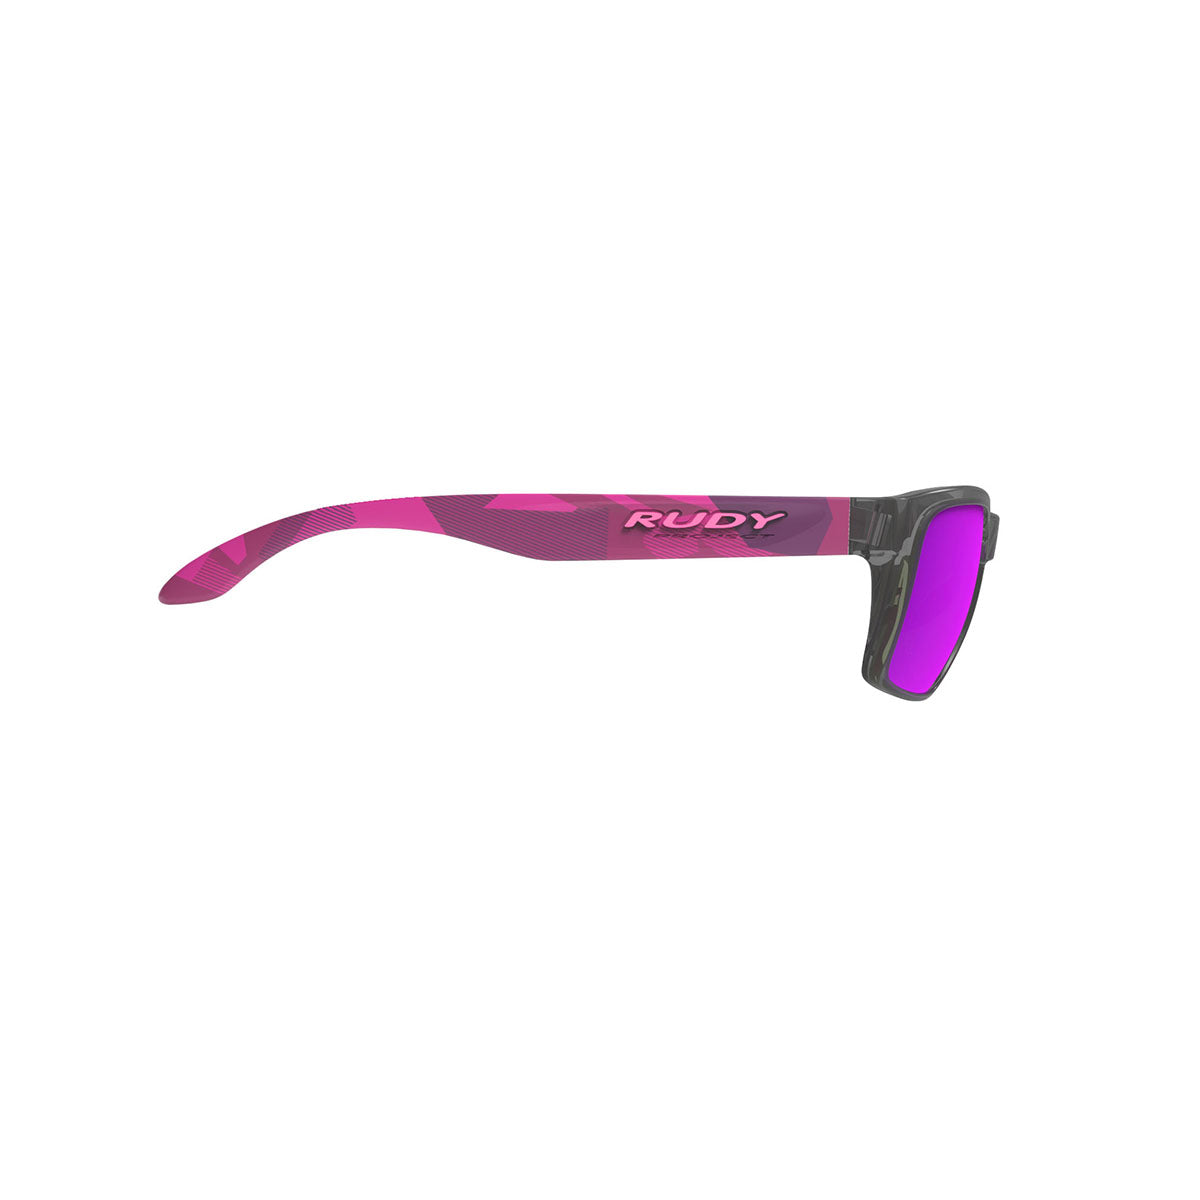 Rudy Project - Spinhawk Slim - frame color: Neo Camo Crystal Wine - lens color: Multilaser Violet - Bumper Color:  - photo angle: Side Variant Hover Image